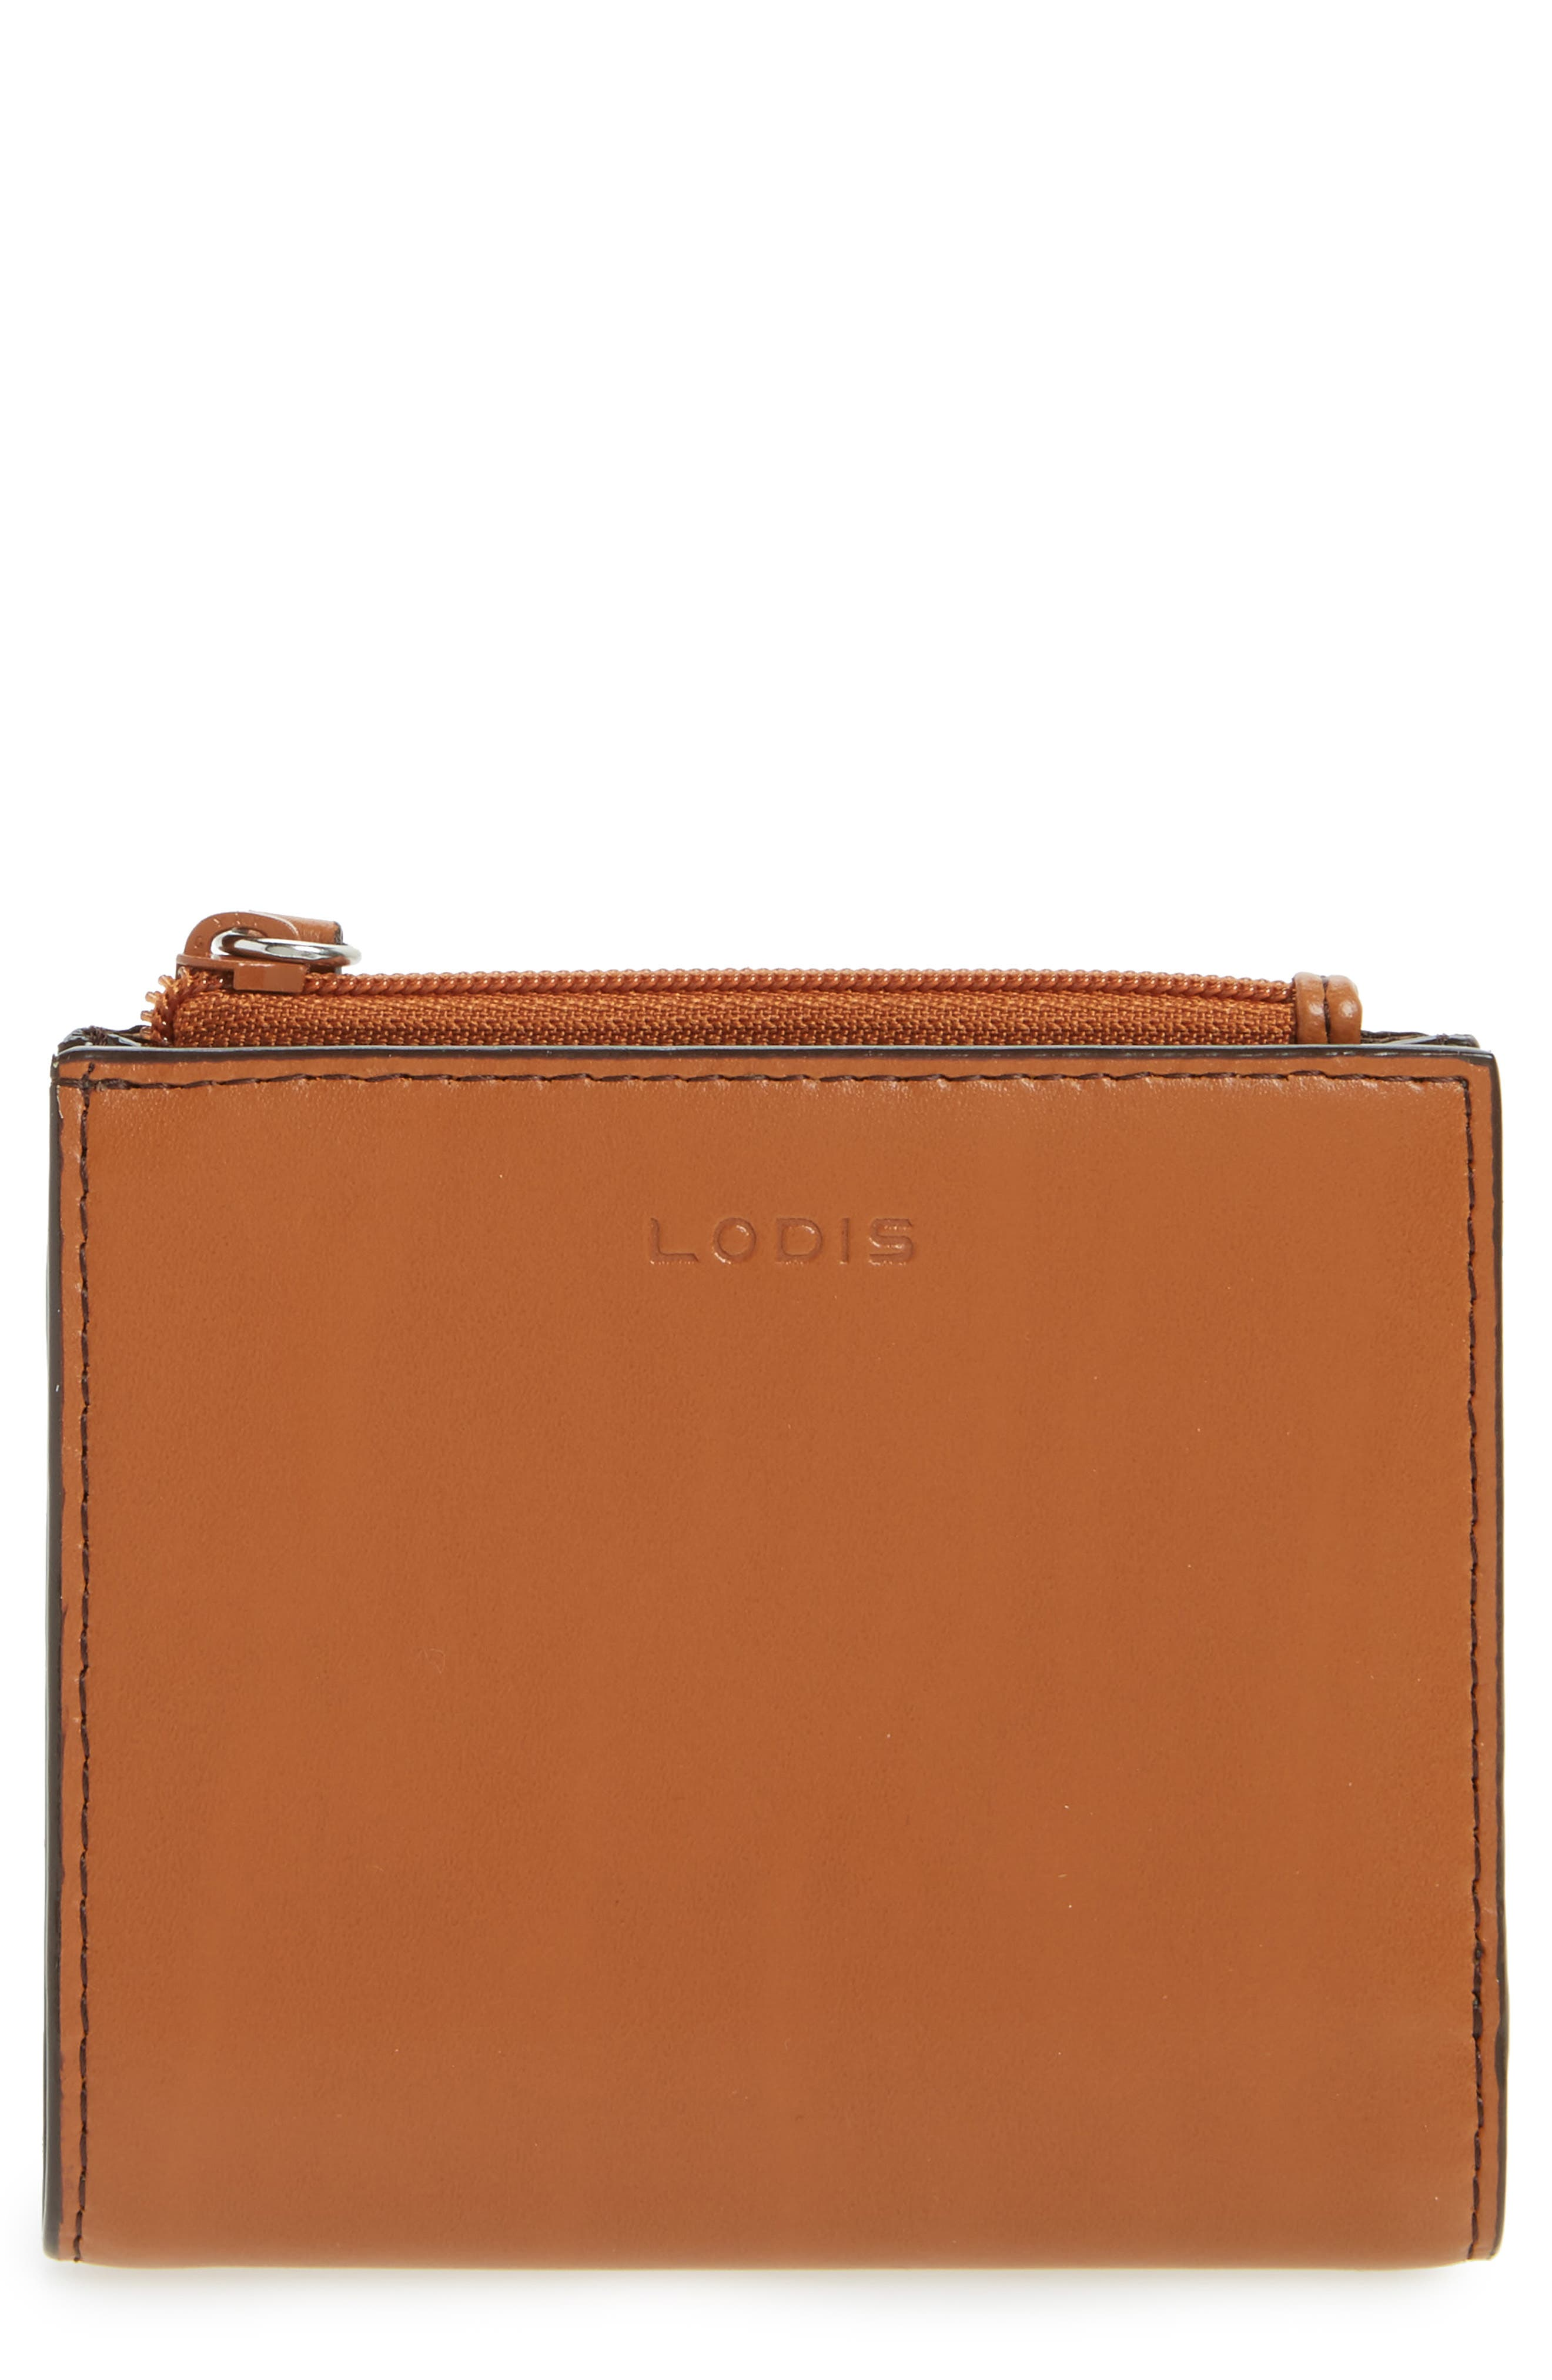 Audrey Under Lock & Key Aldis Leather Wallet,                         Main,                         color, Toffee